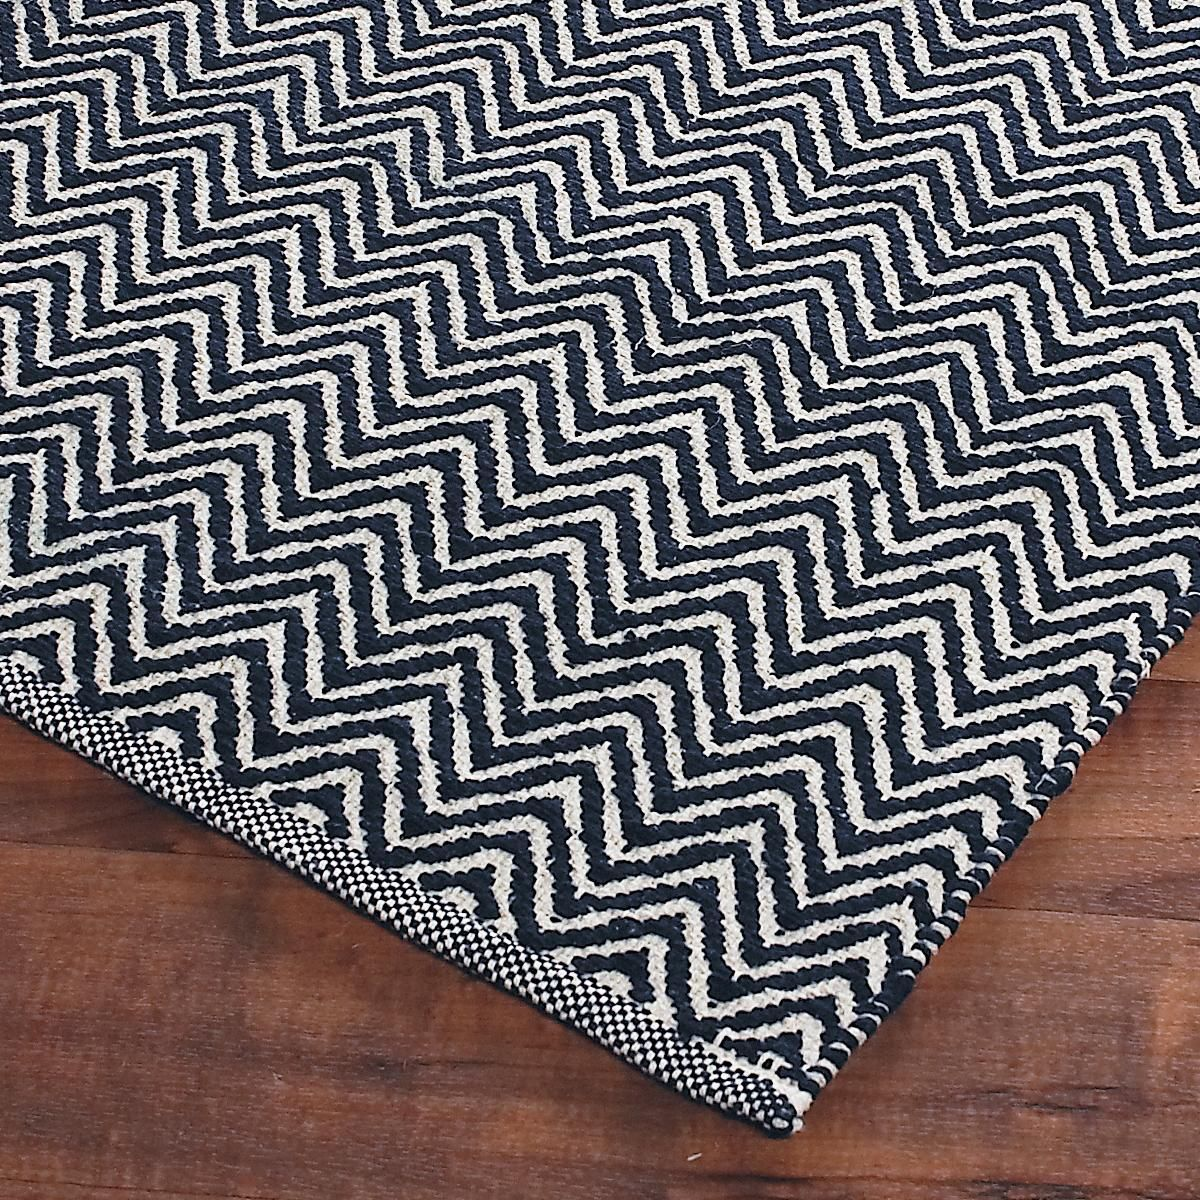 Chevron Kitchen Rug: Cotton Chevron Flat Weave Rug